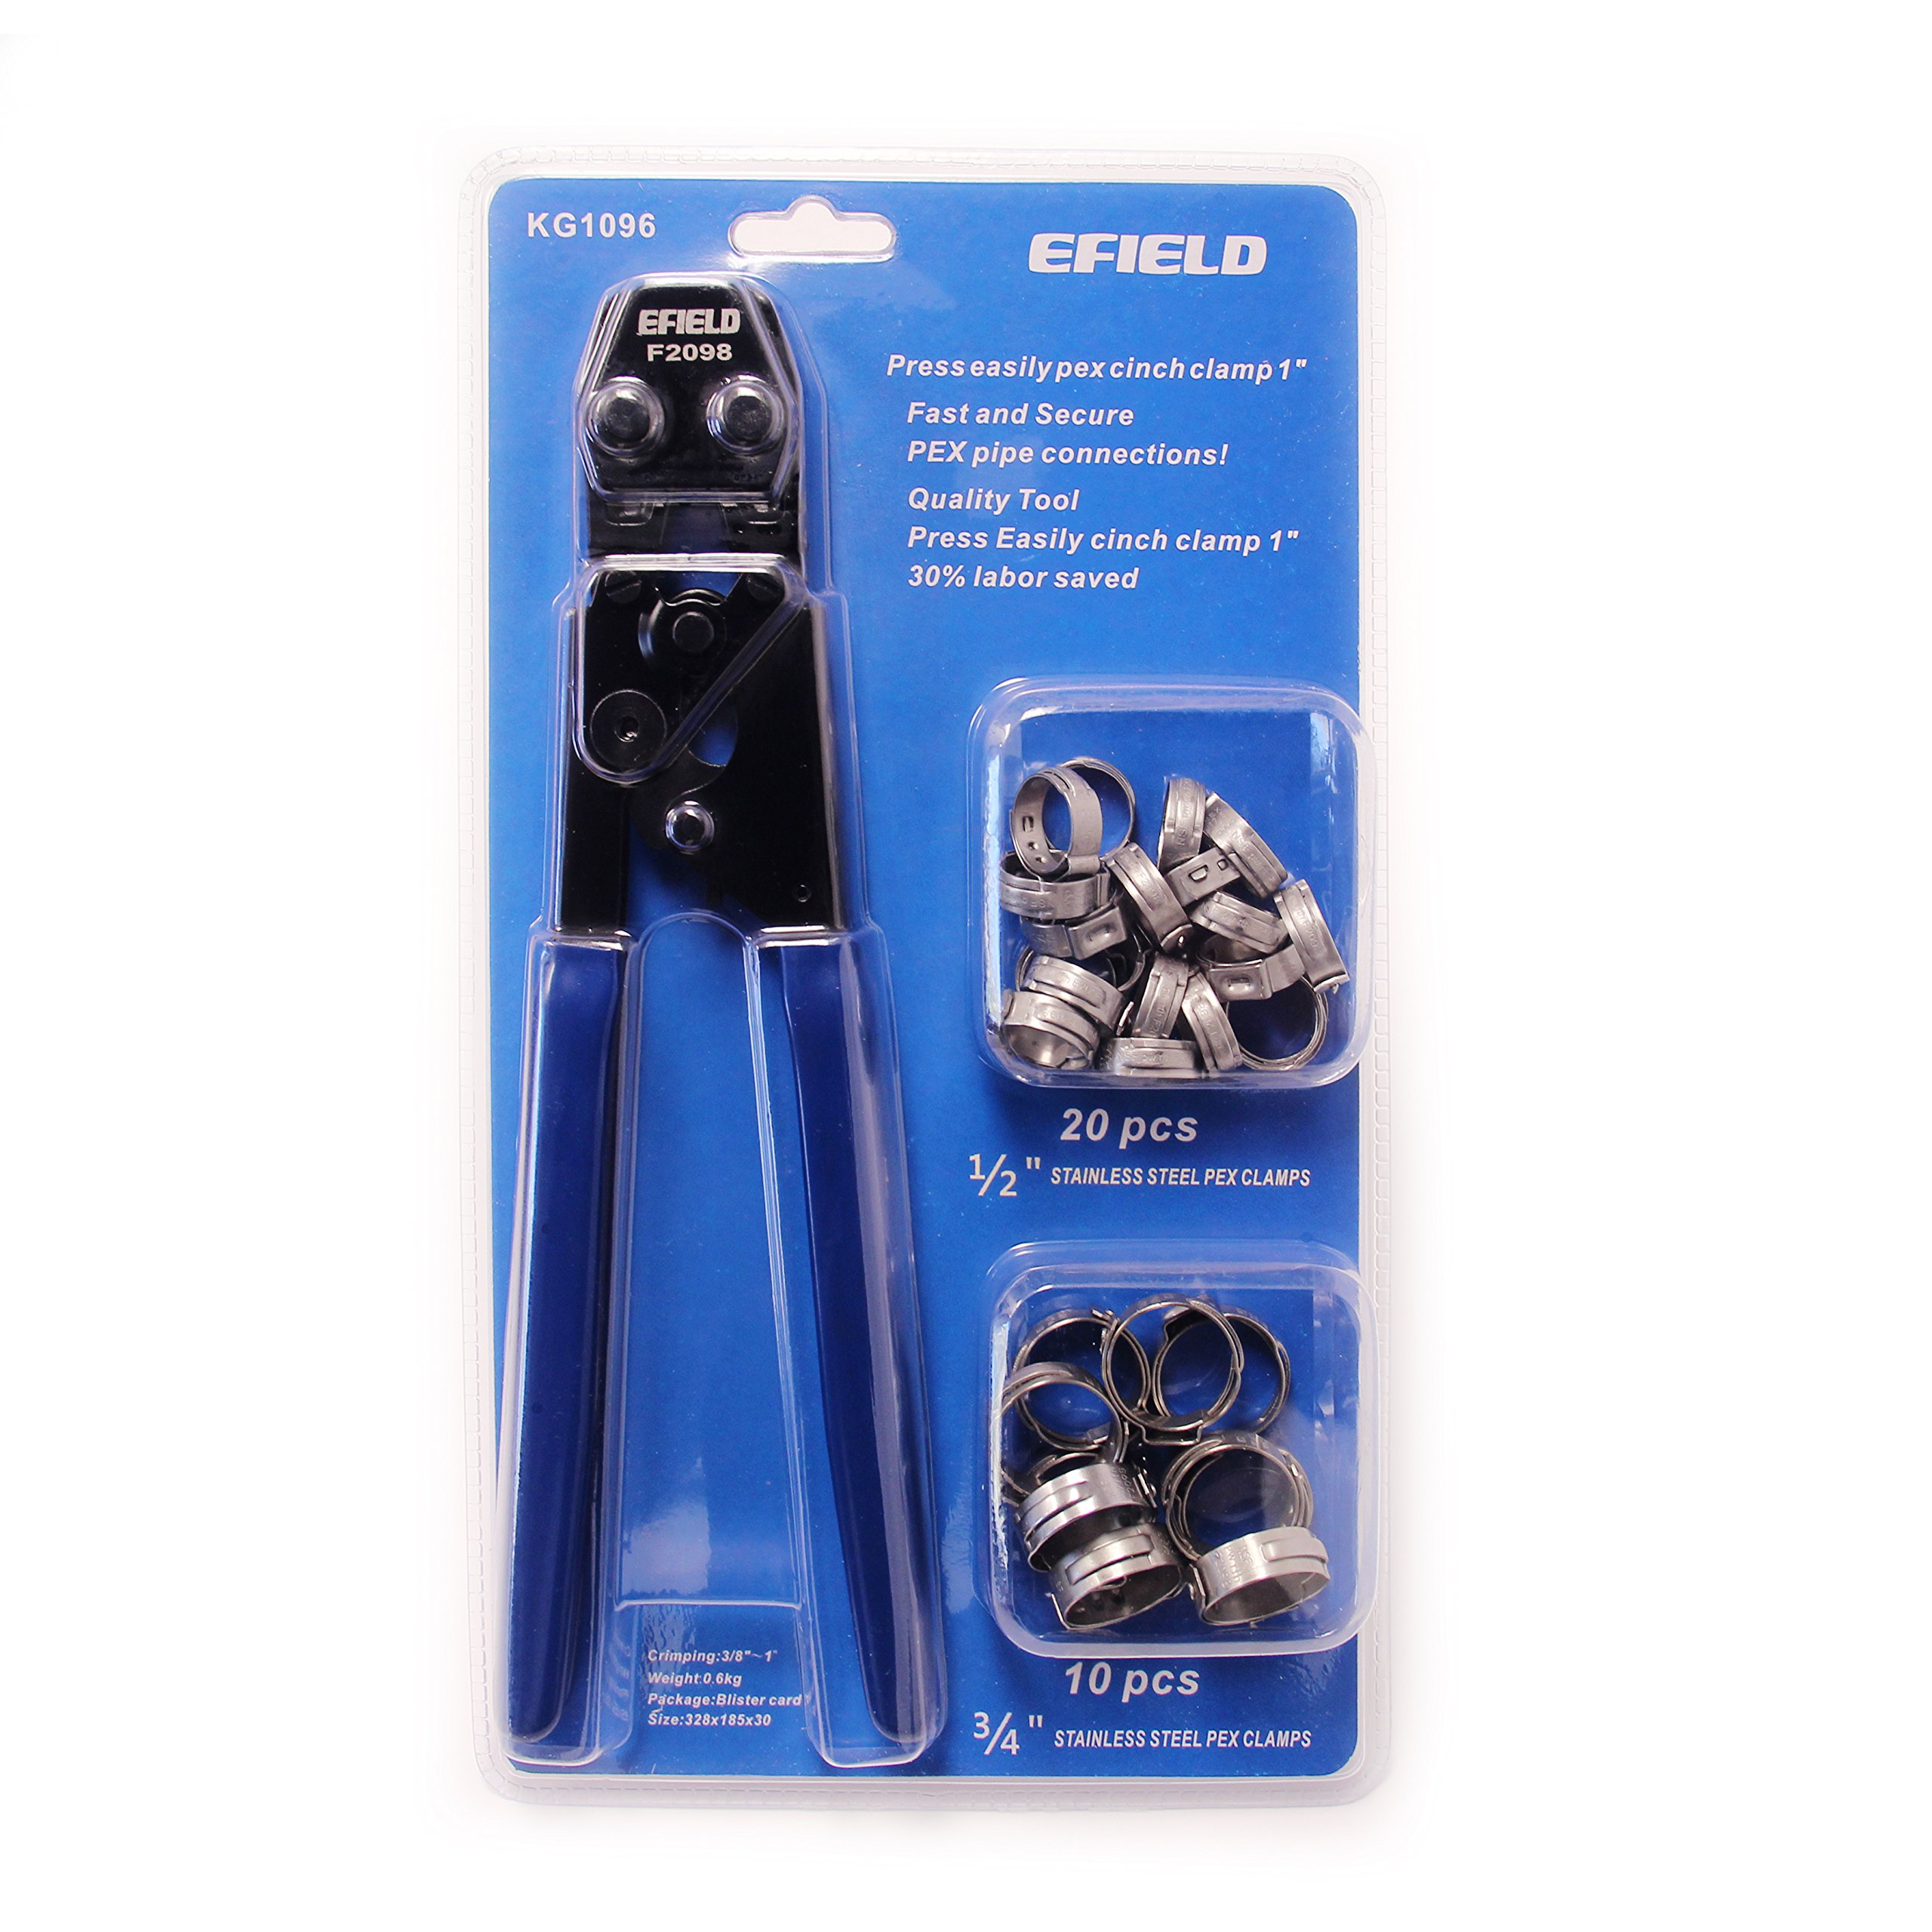 EFIELD PEX Cinch Clamp Crimping Tool for Clamps Sizes: 3/8'' to 1'' with Go-No/Go Gauge 20pcs 1/2'' and 10 pcs 3/4'' Clamps Fits Sharkbite, Watts, and All US F2098 Standard